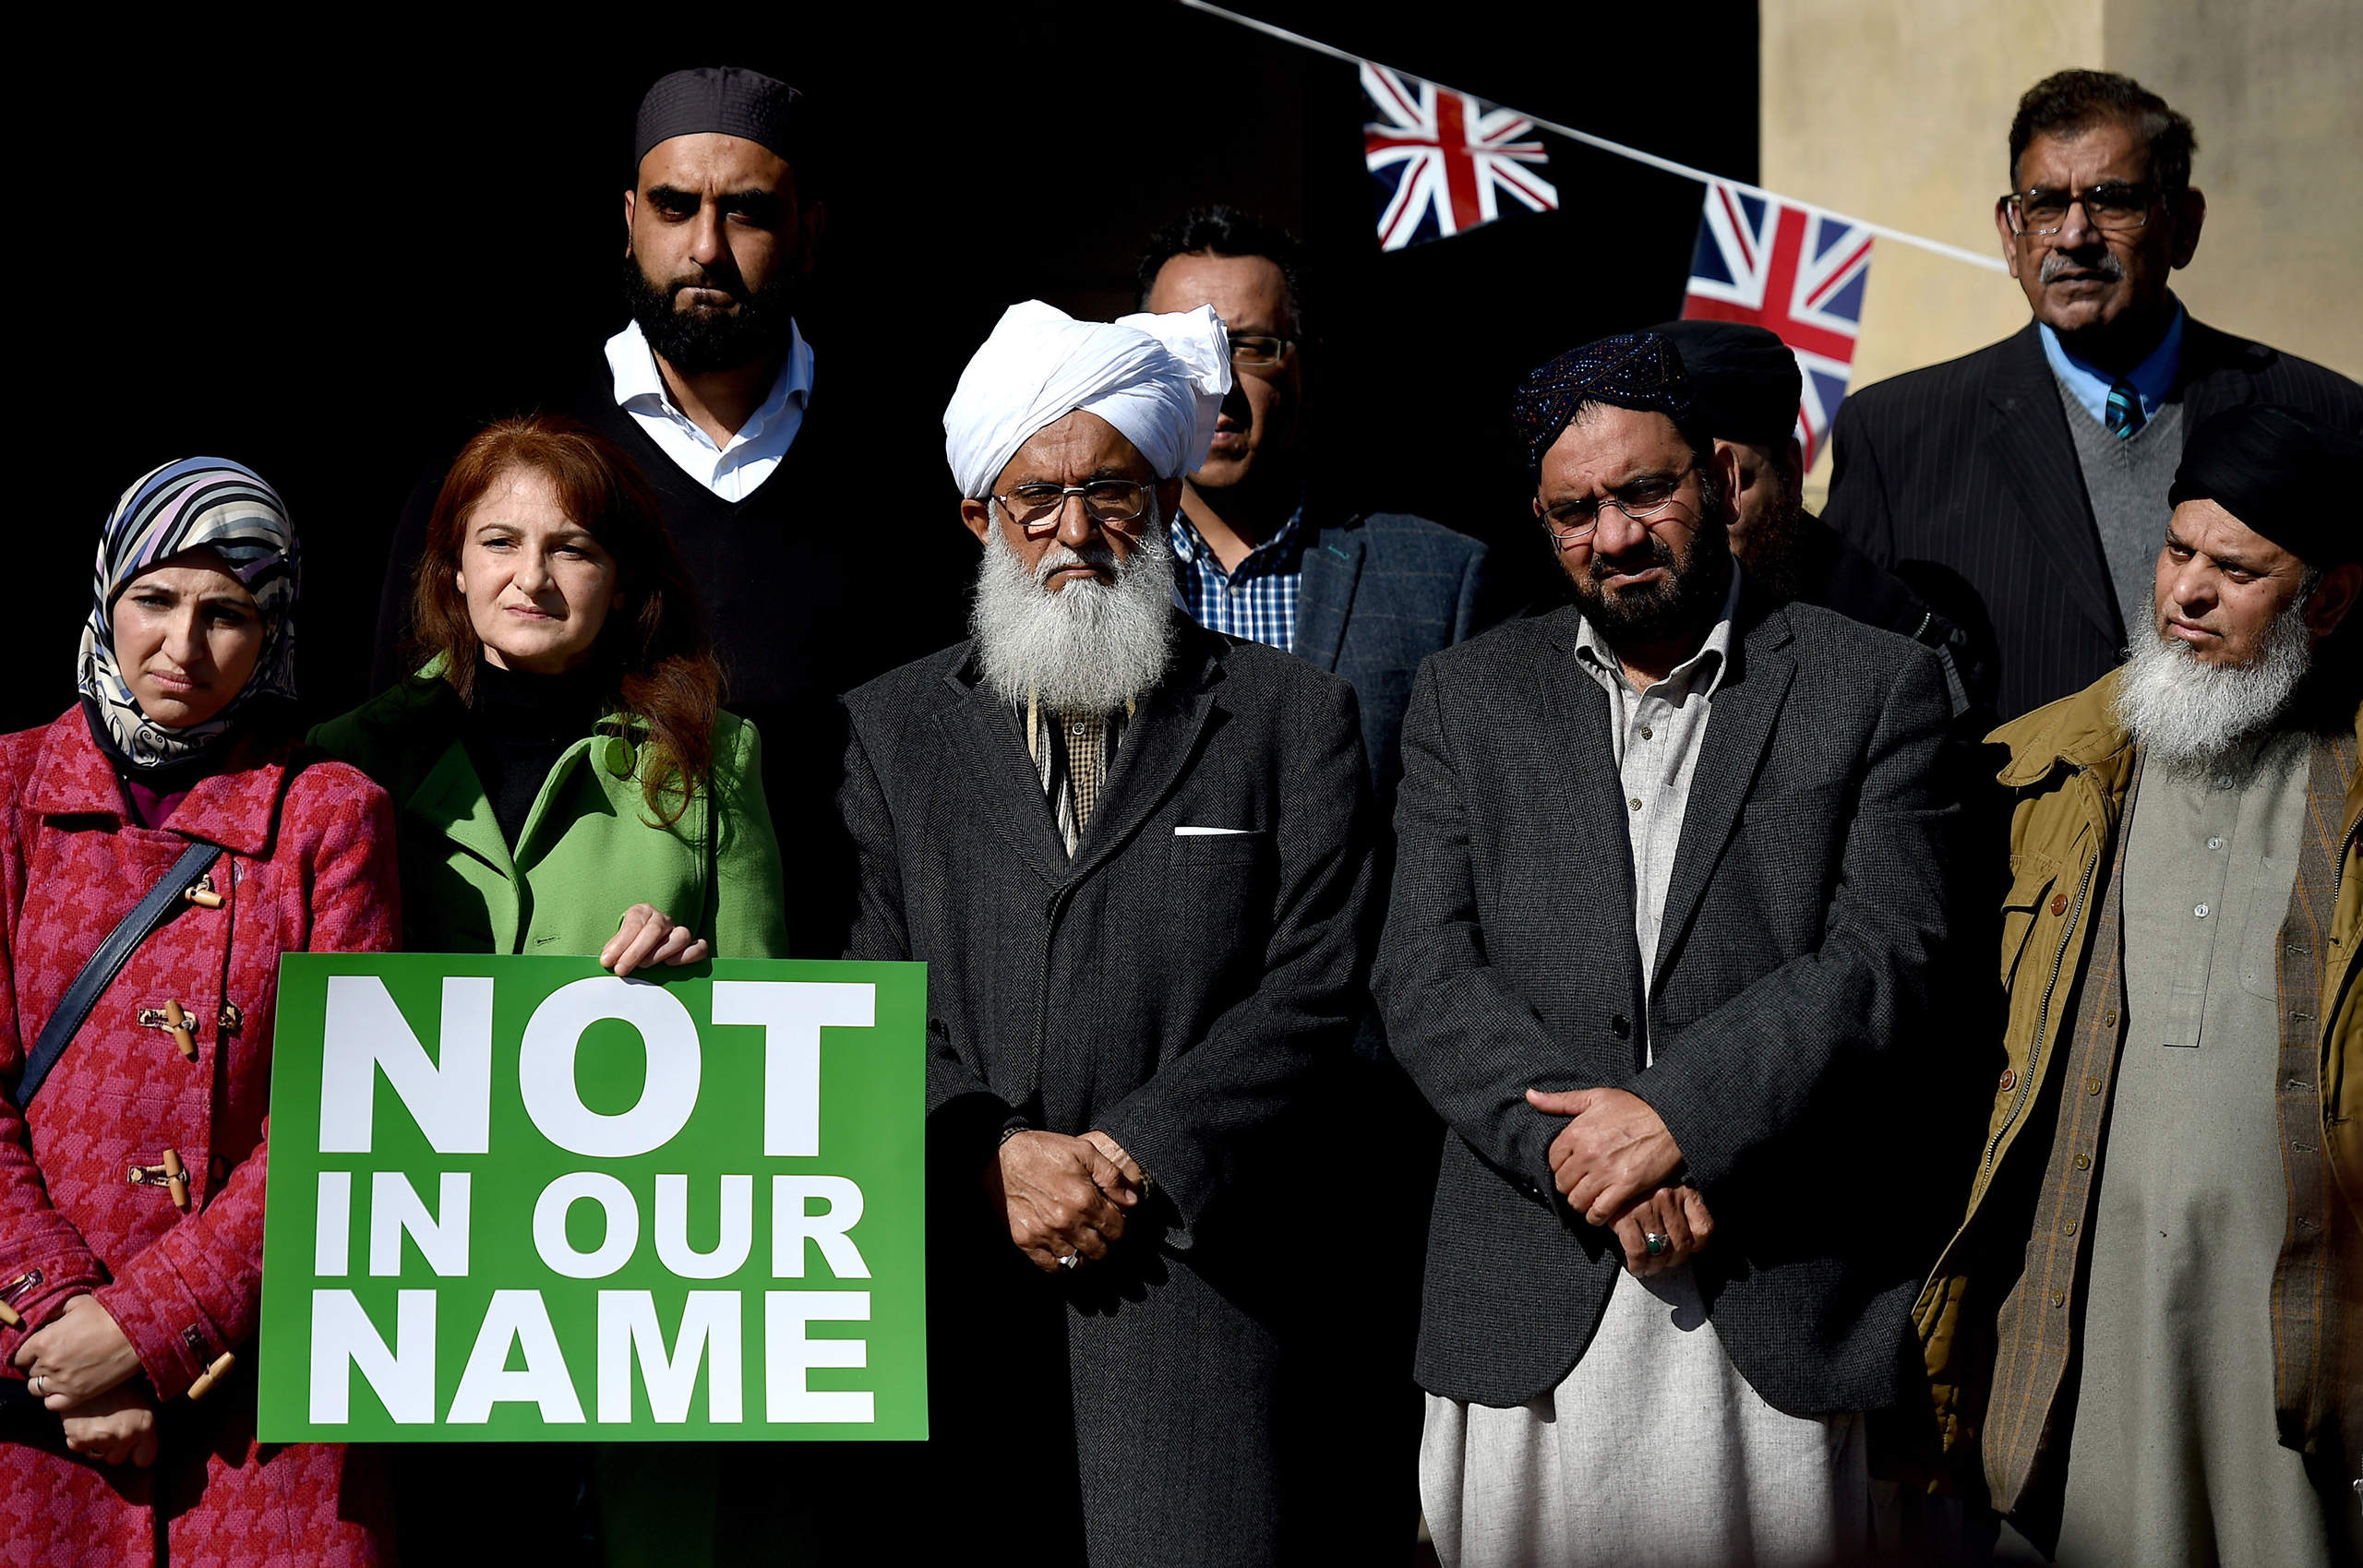 People take part in a #NotInOurName public rally against terrorism organized by members of the Muslim community in Victoria Square, Birmingham, on March 25, 2017.